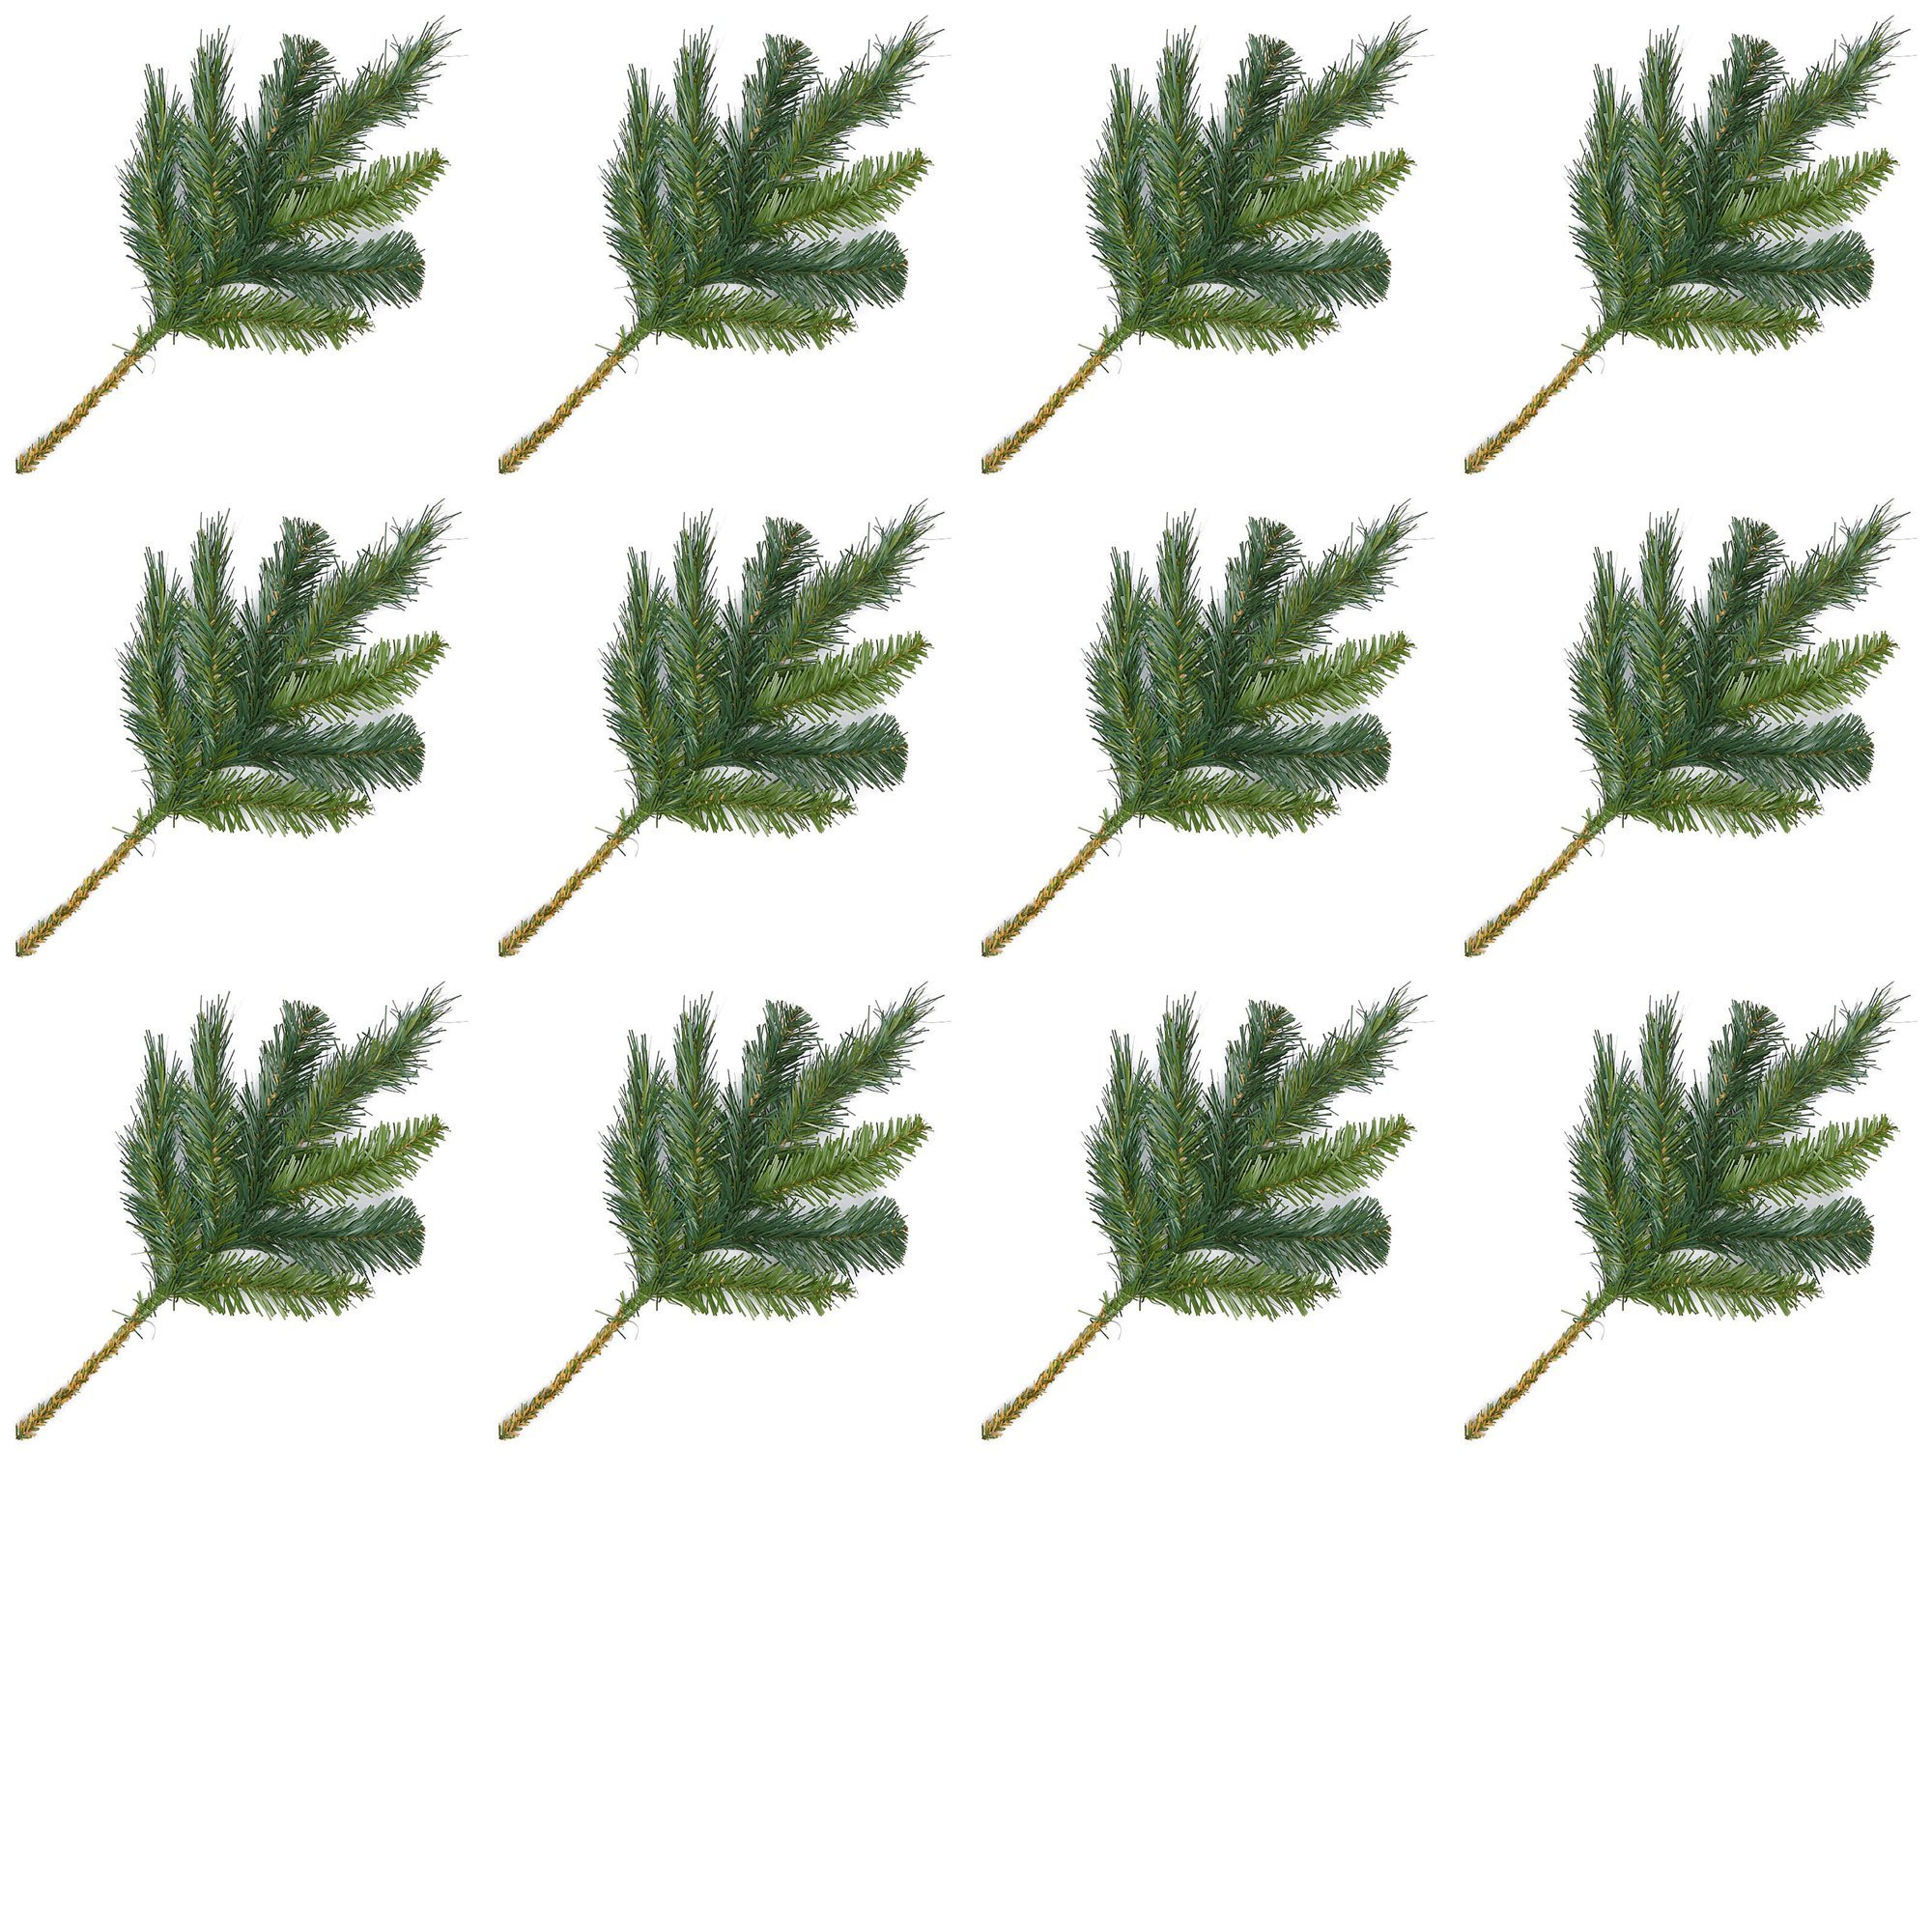 Factory Direct Craft Artificial Evergreen Pine Picks for Holiday Decorating - 24 Picks